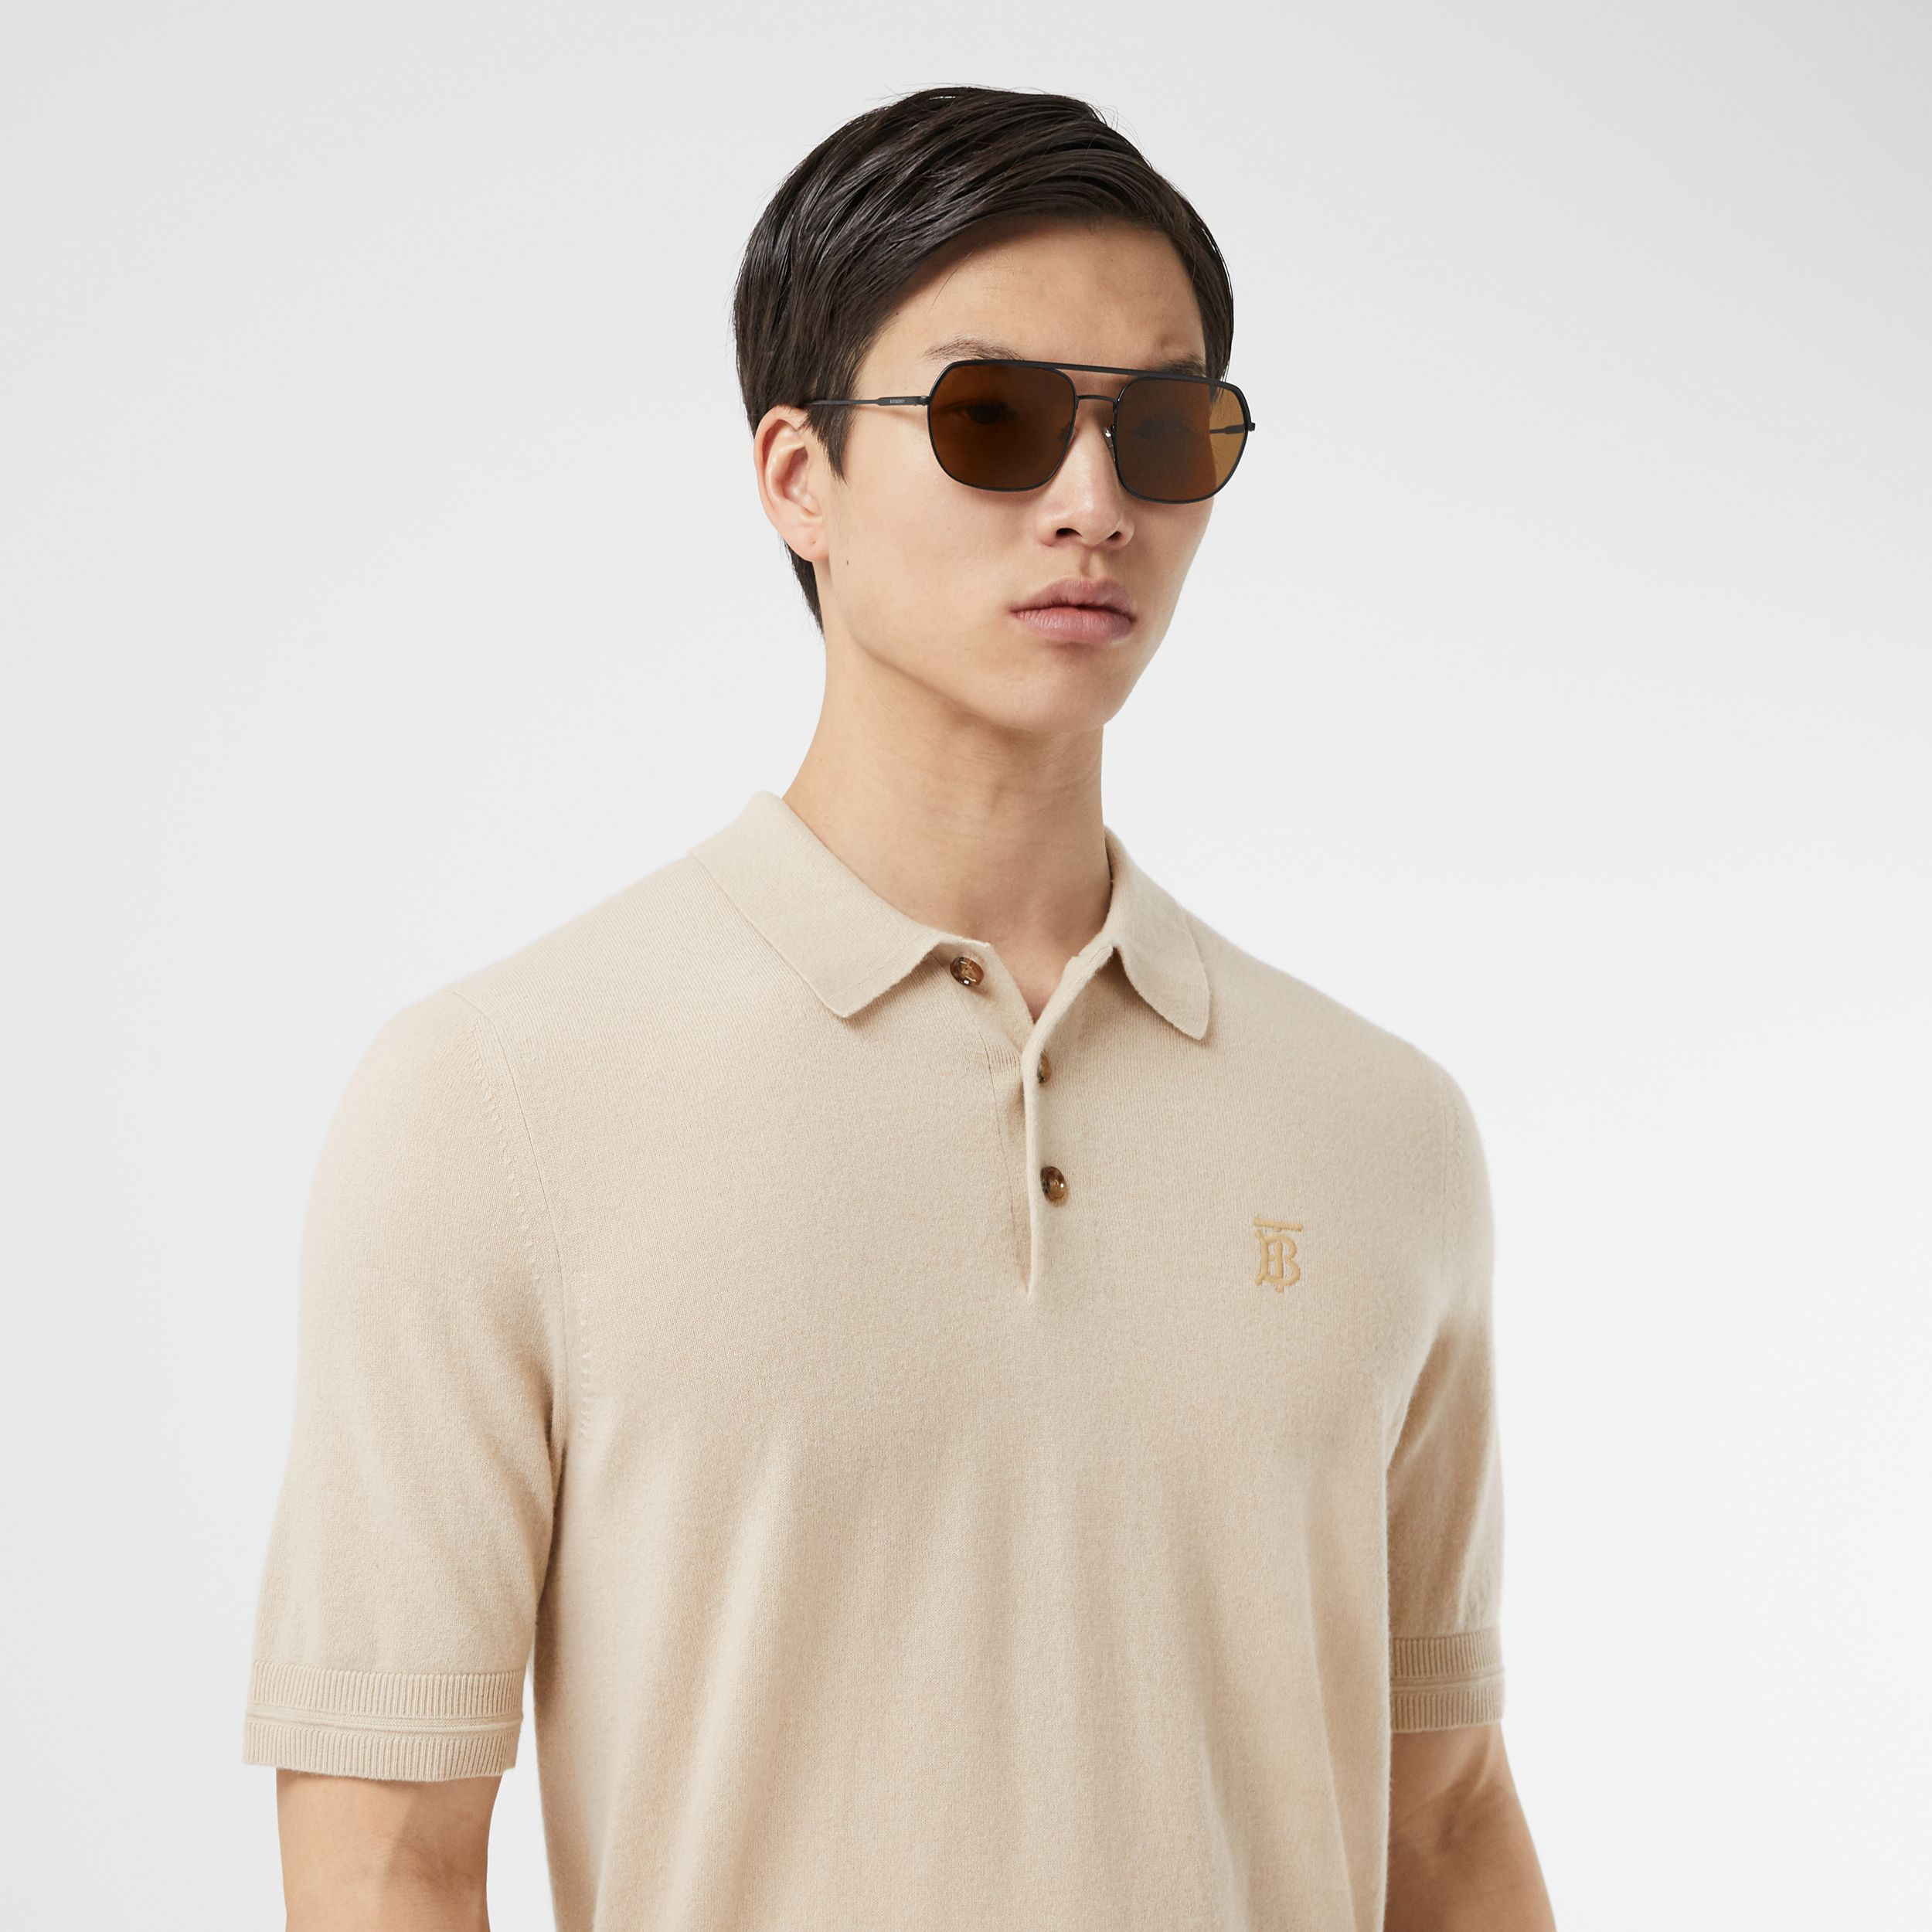 Monogram Motif Cashmere Polo Shirt in Soft Fawn | Burberry - 2